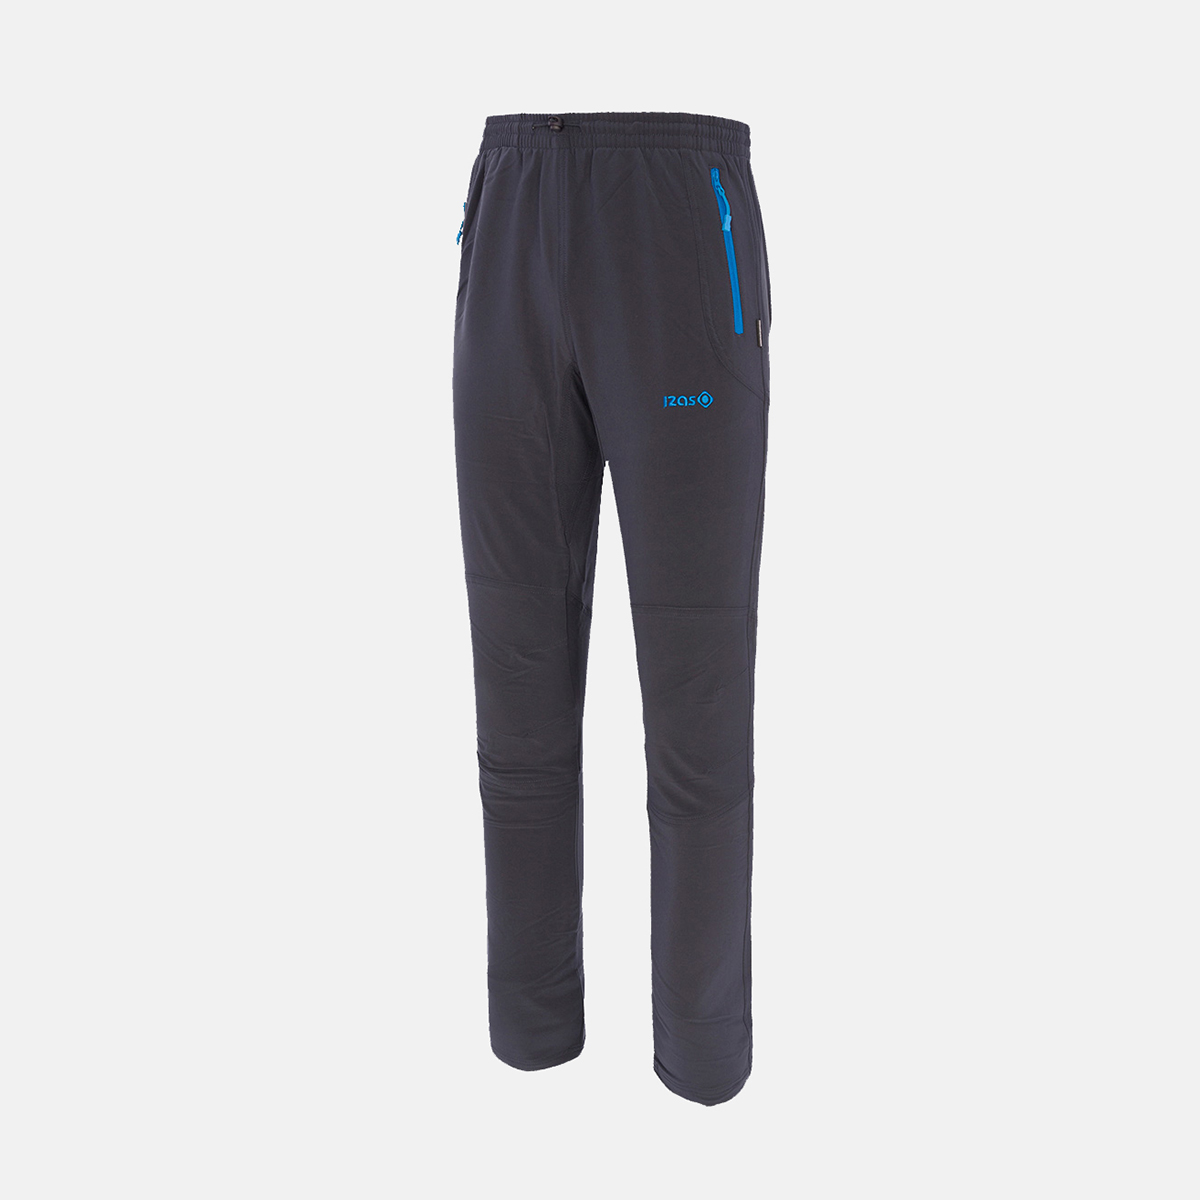 MAN'S CLOISTER MOUNT STRETCH PANT GREY